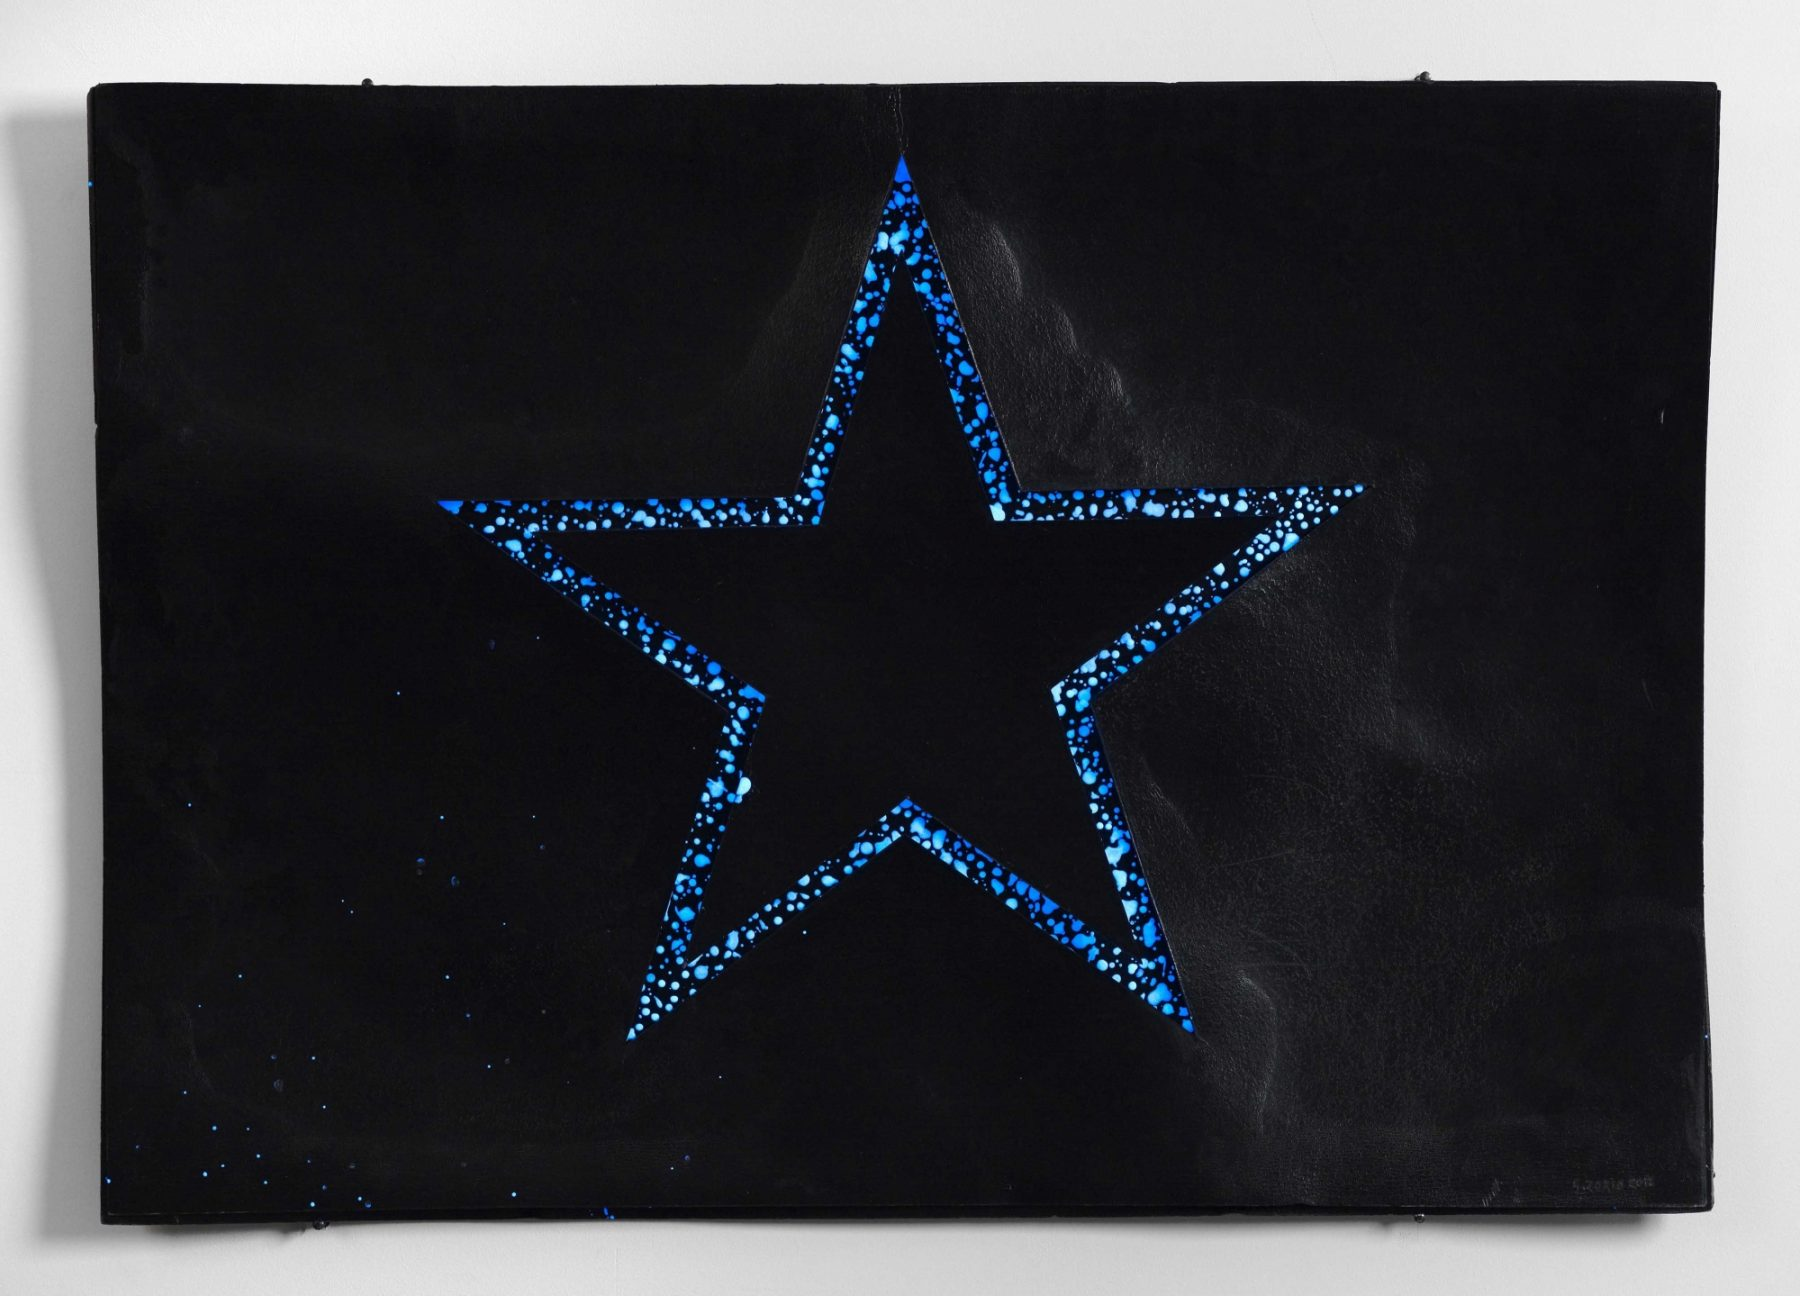 Stella sul nero (Star on Black)